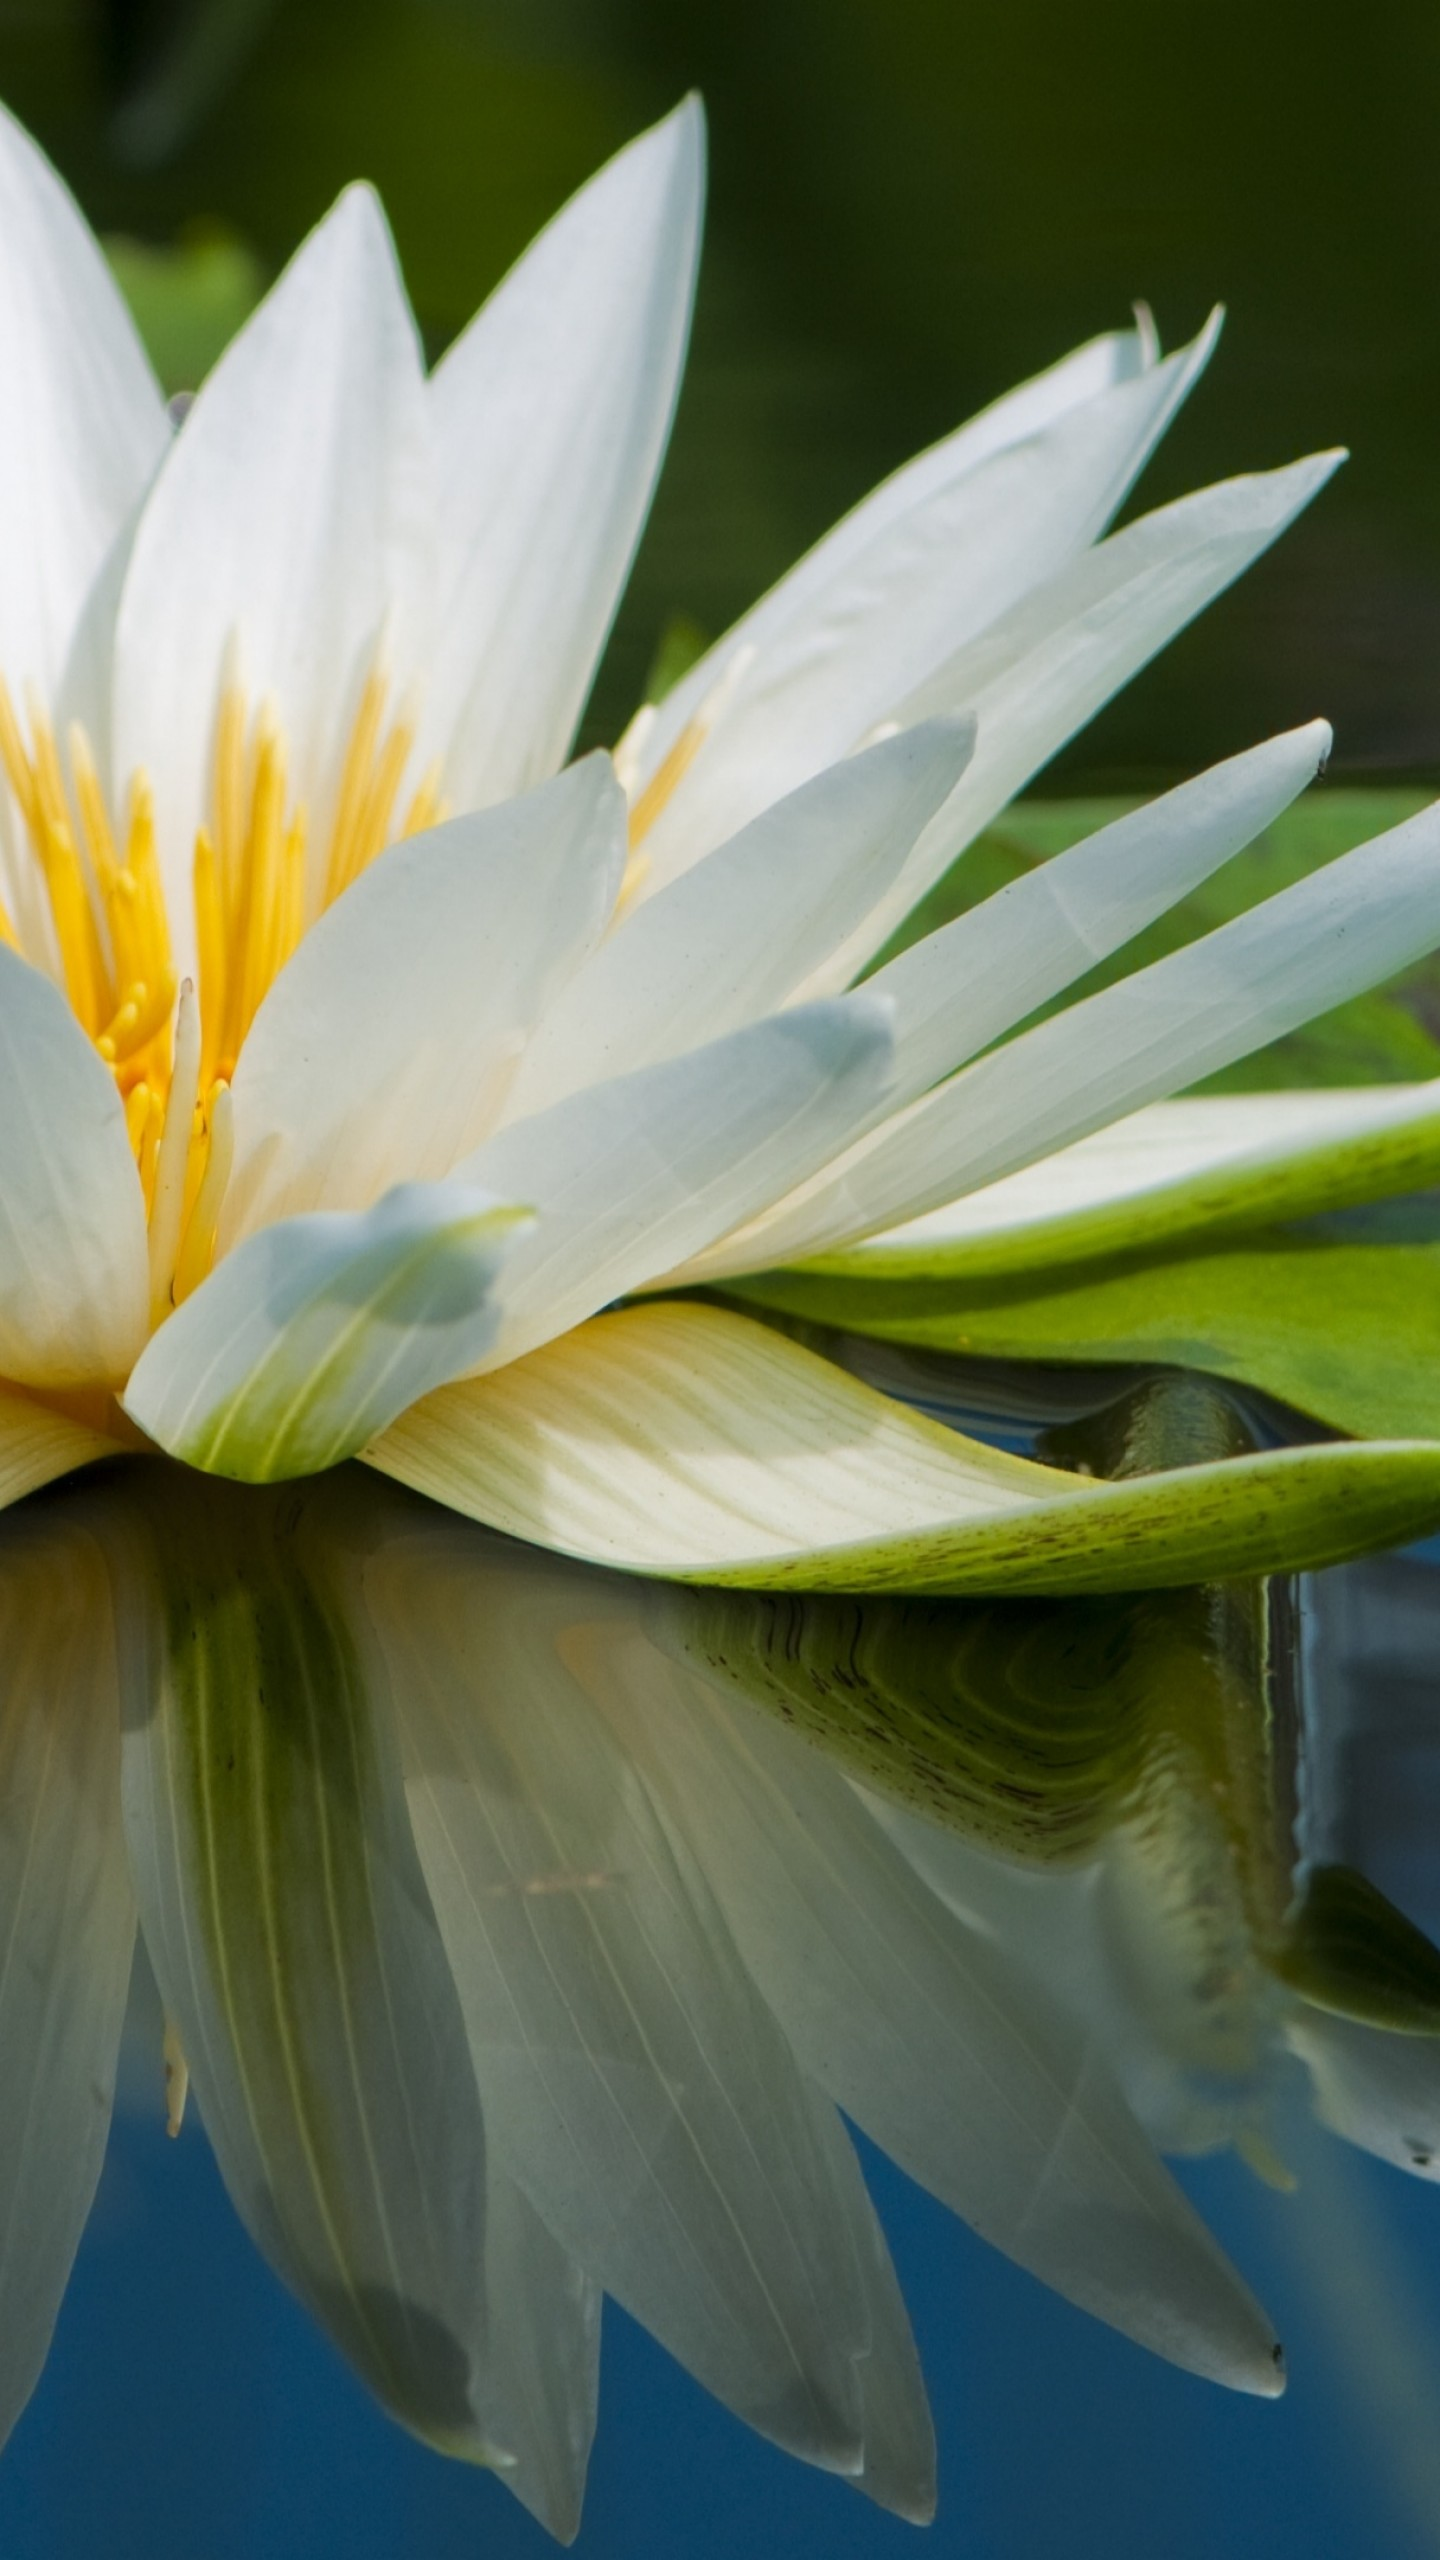 Biker Wallpaper Quotes Wallpaper Lotus 5k 4k Wallpaper Flowers Lake River